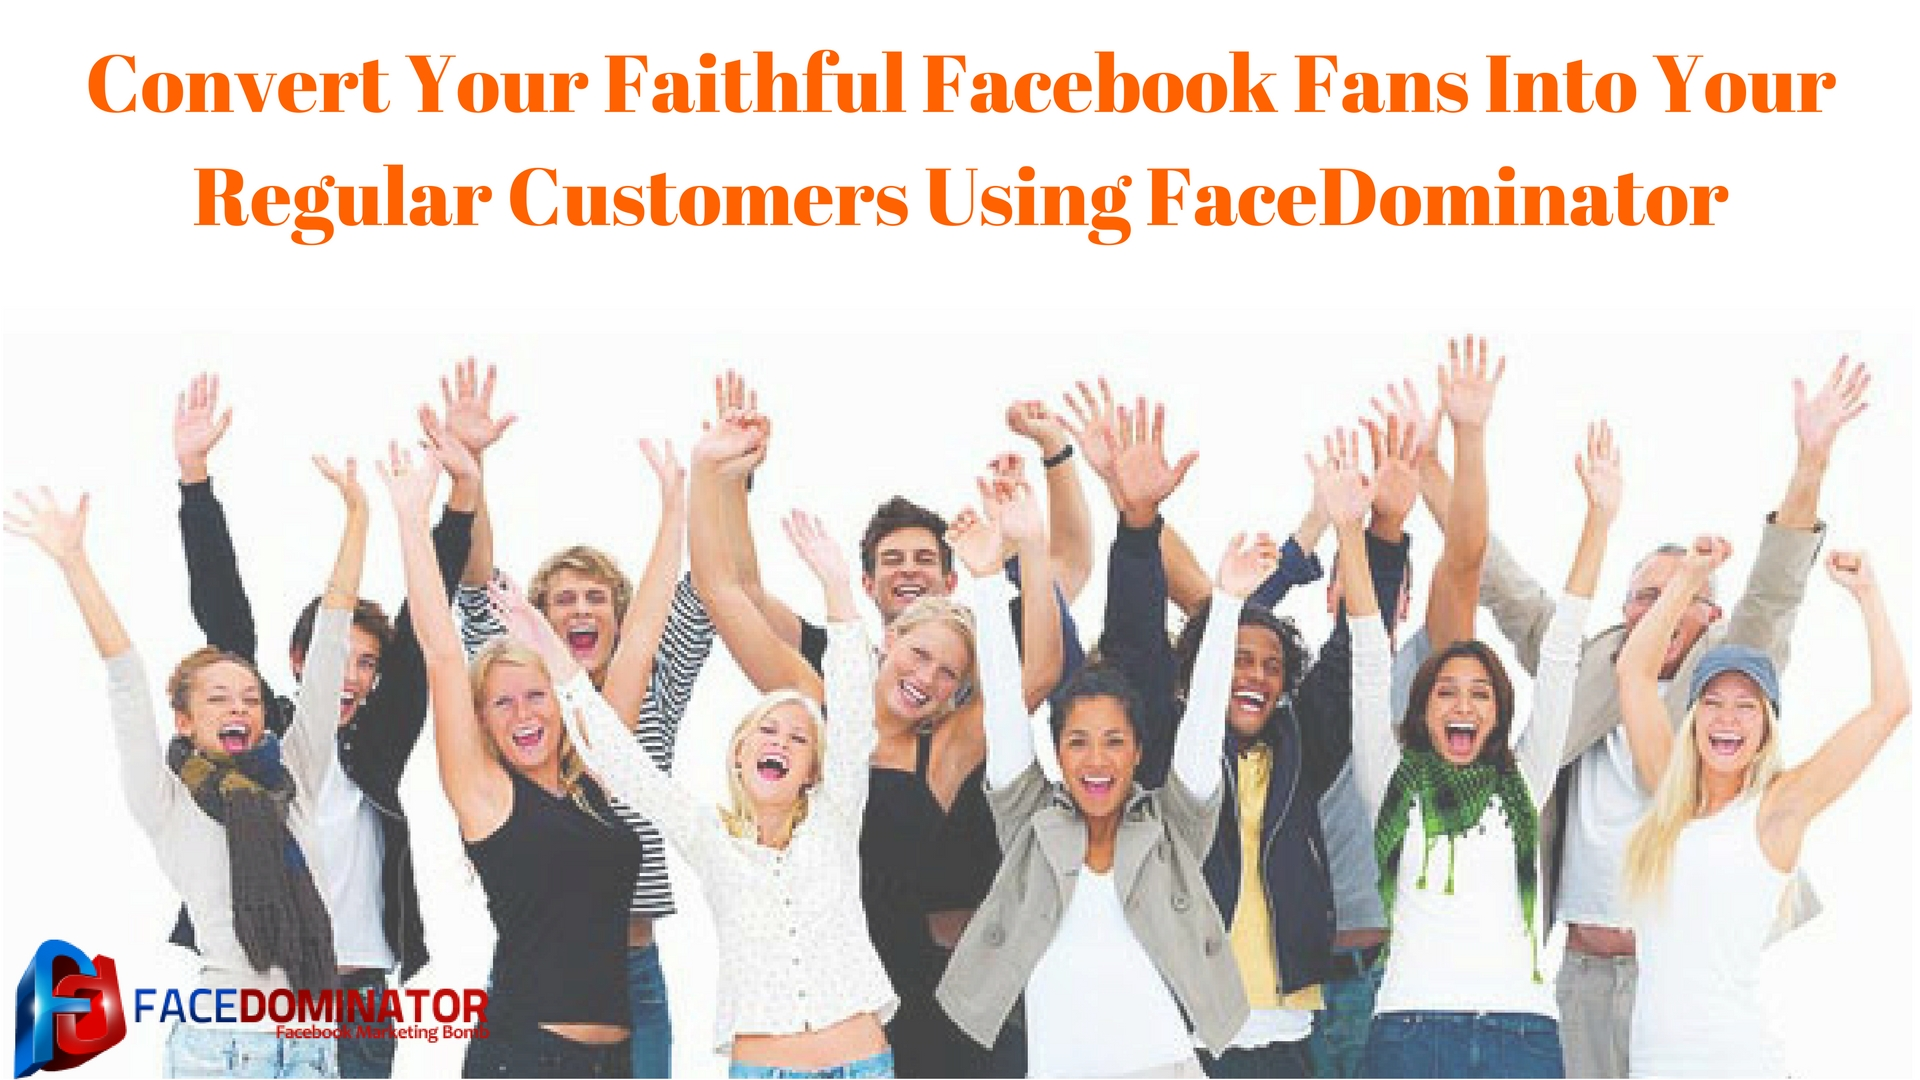 Convert Your Faithful Facebook Fans Into Your Regular Customers Using FaceDominator